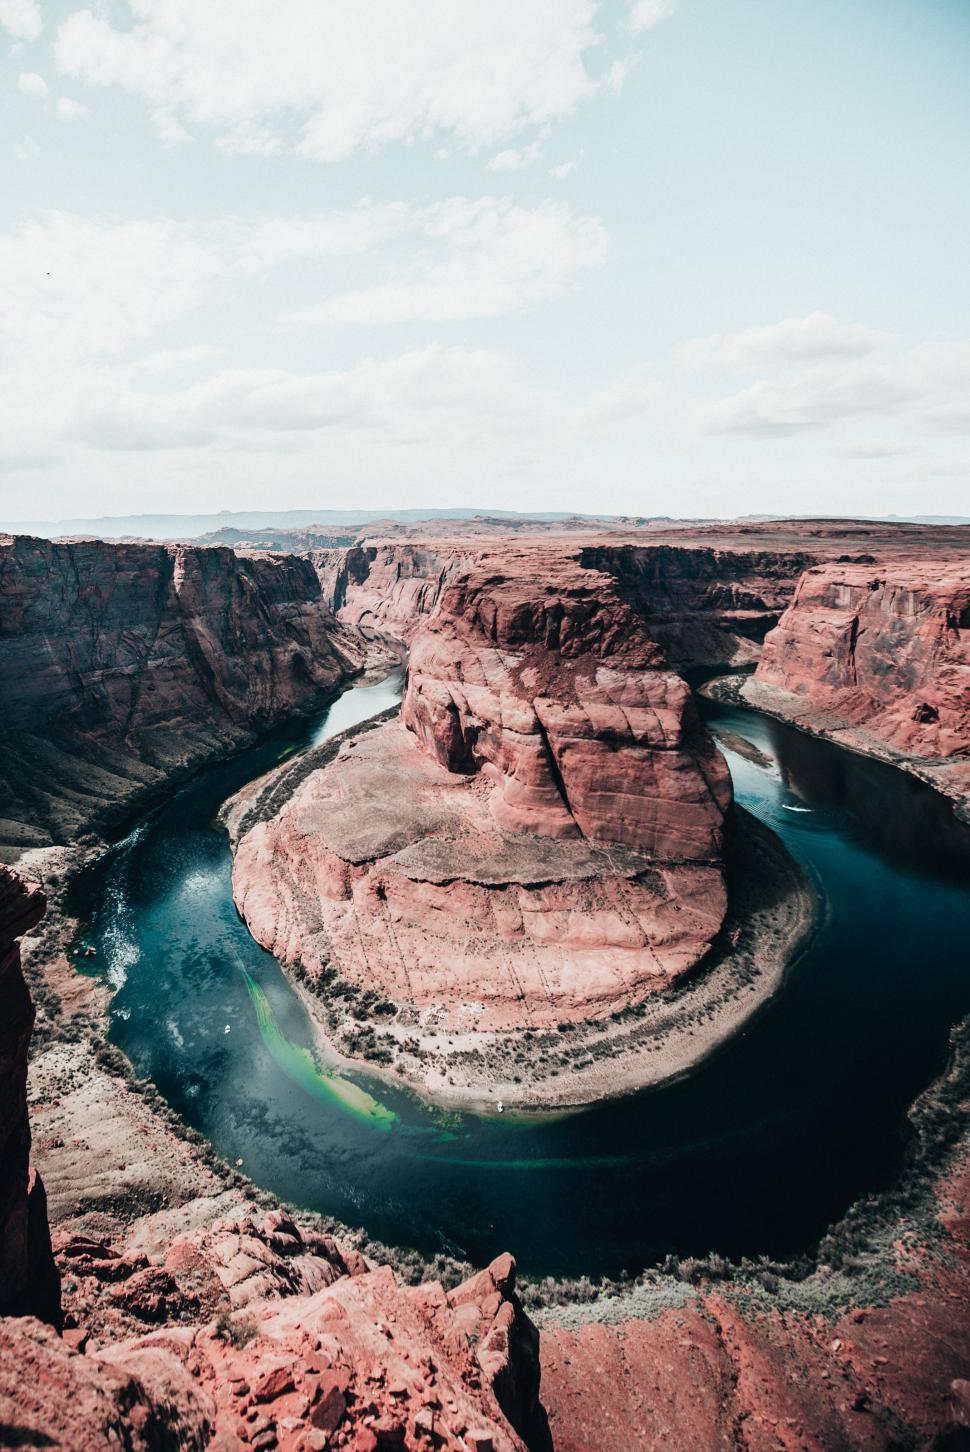 Download Free Stock HD Photo of Wide view of Horseshoe bend, Colorado river Online